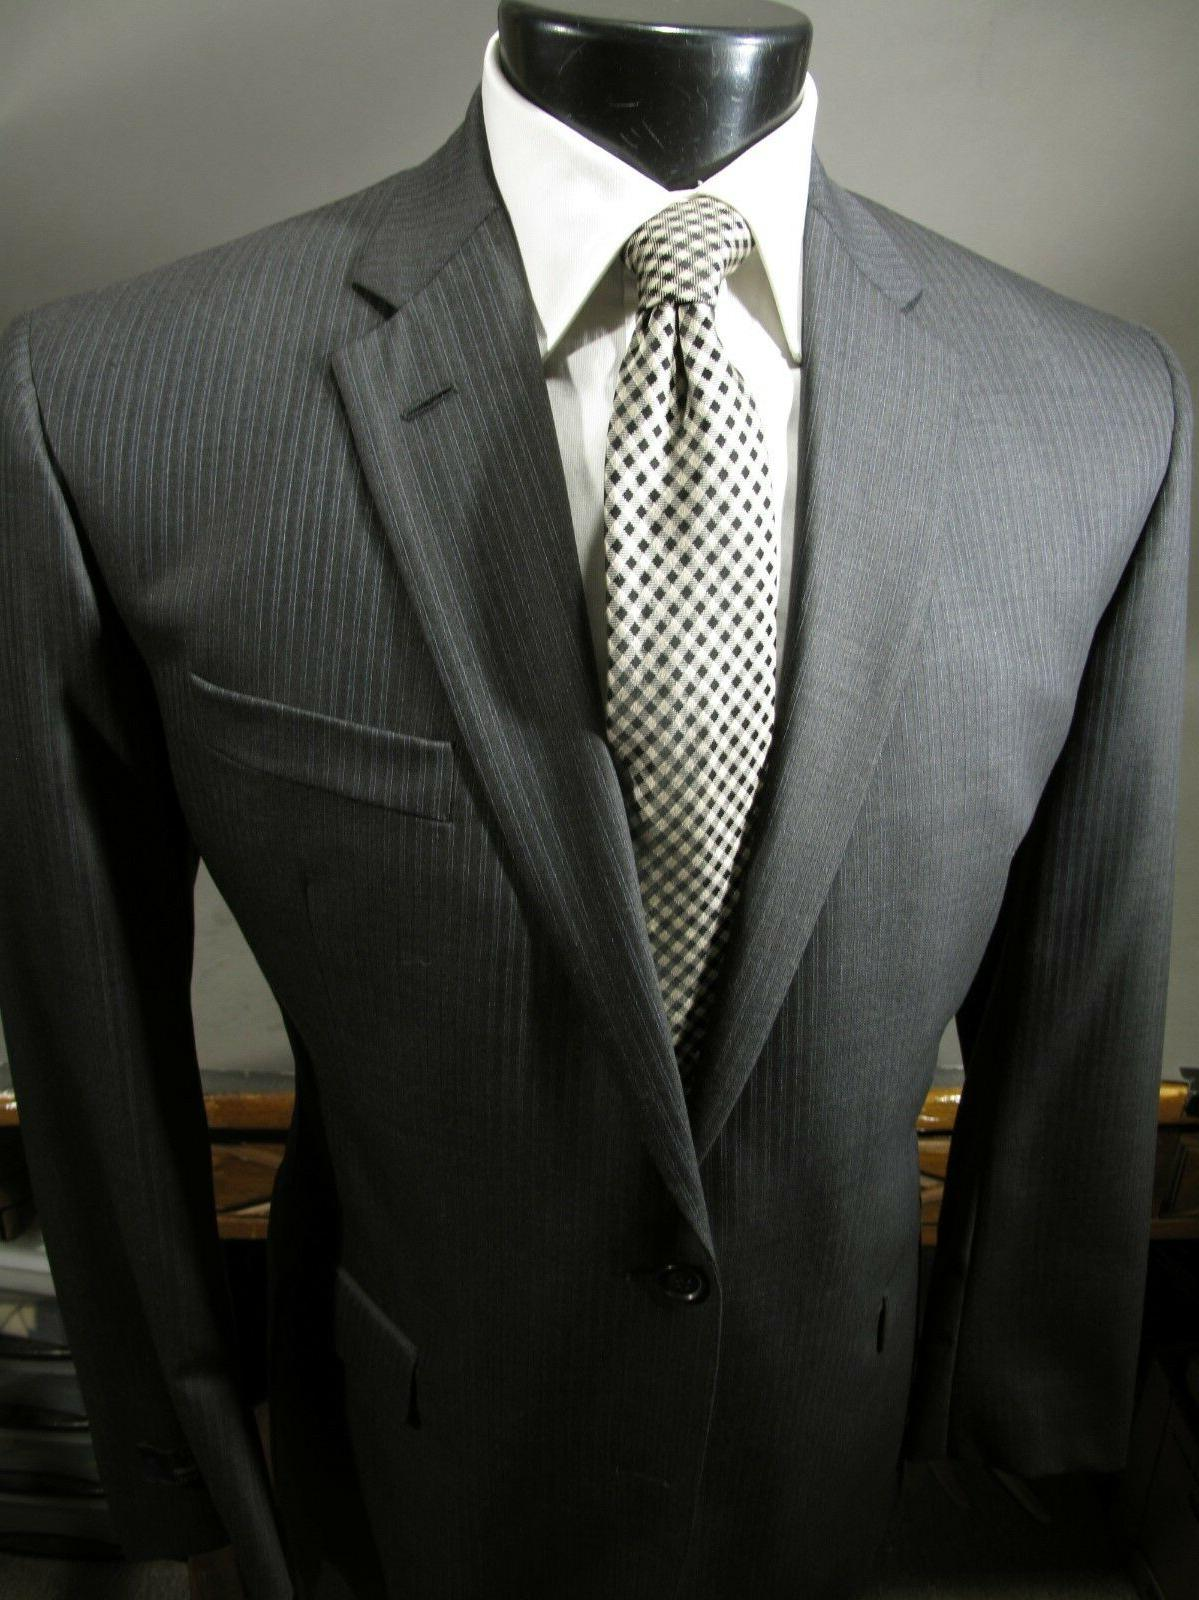 new 1300 milano suit 46 l charcoal